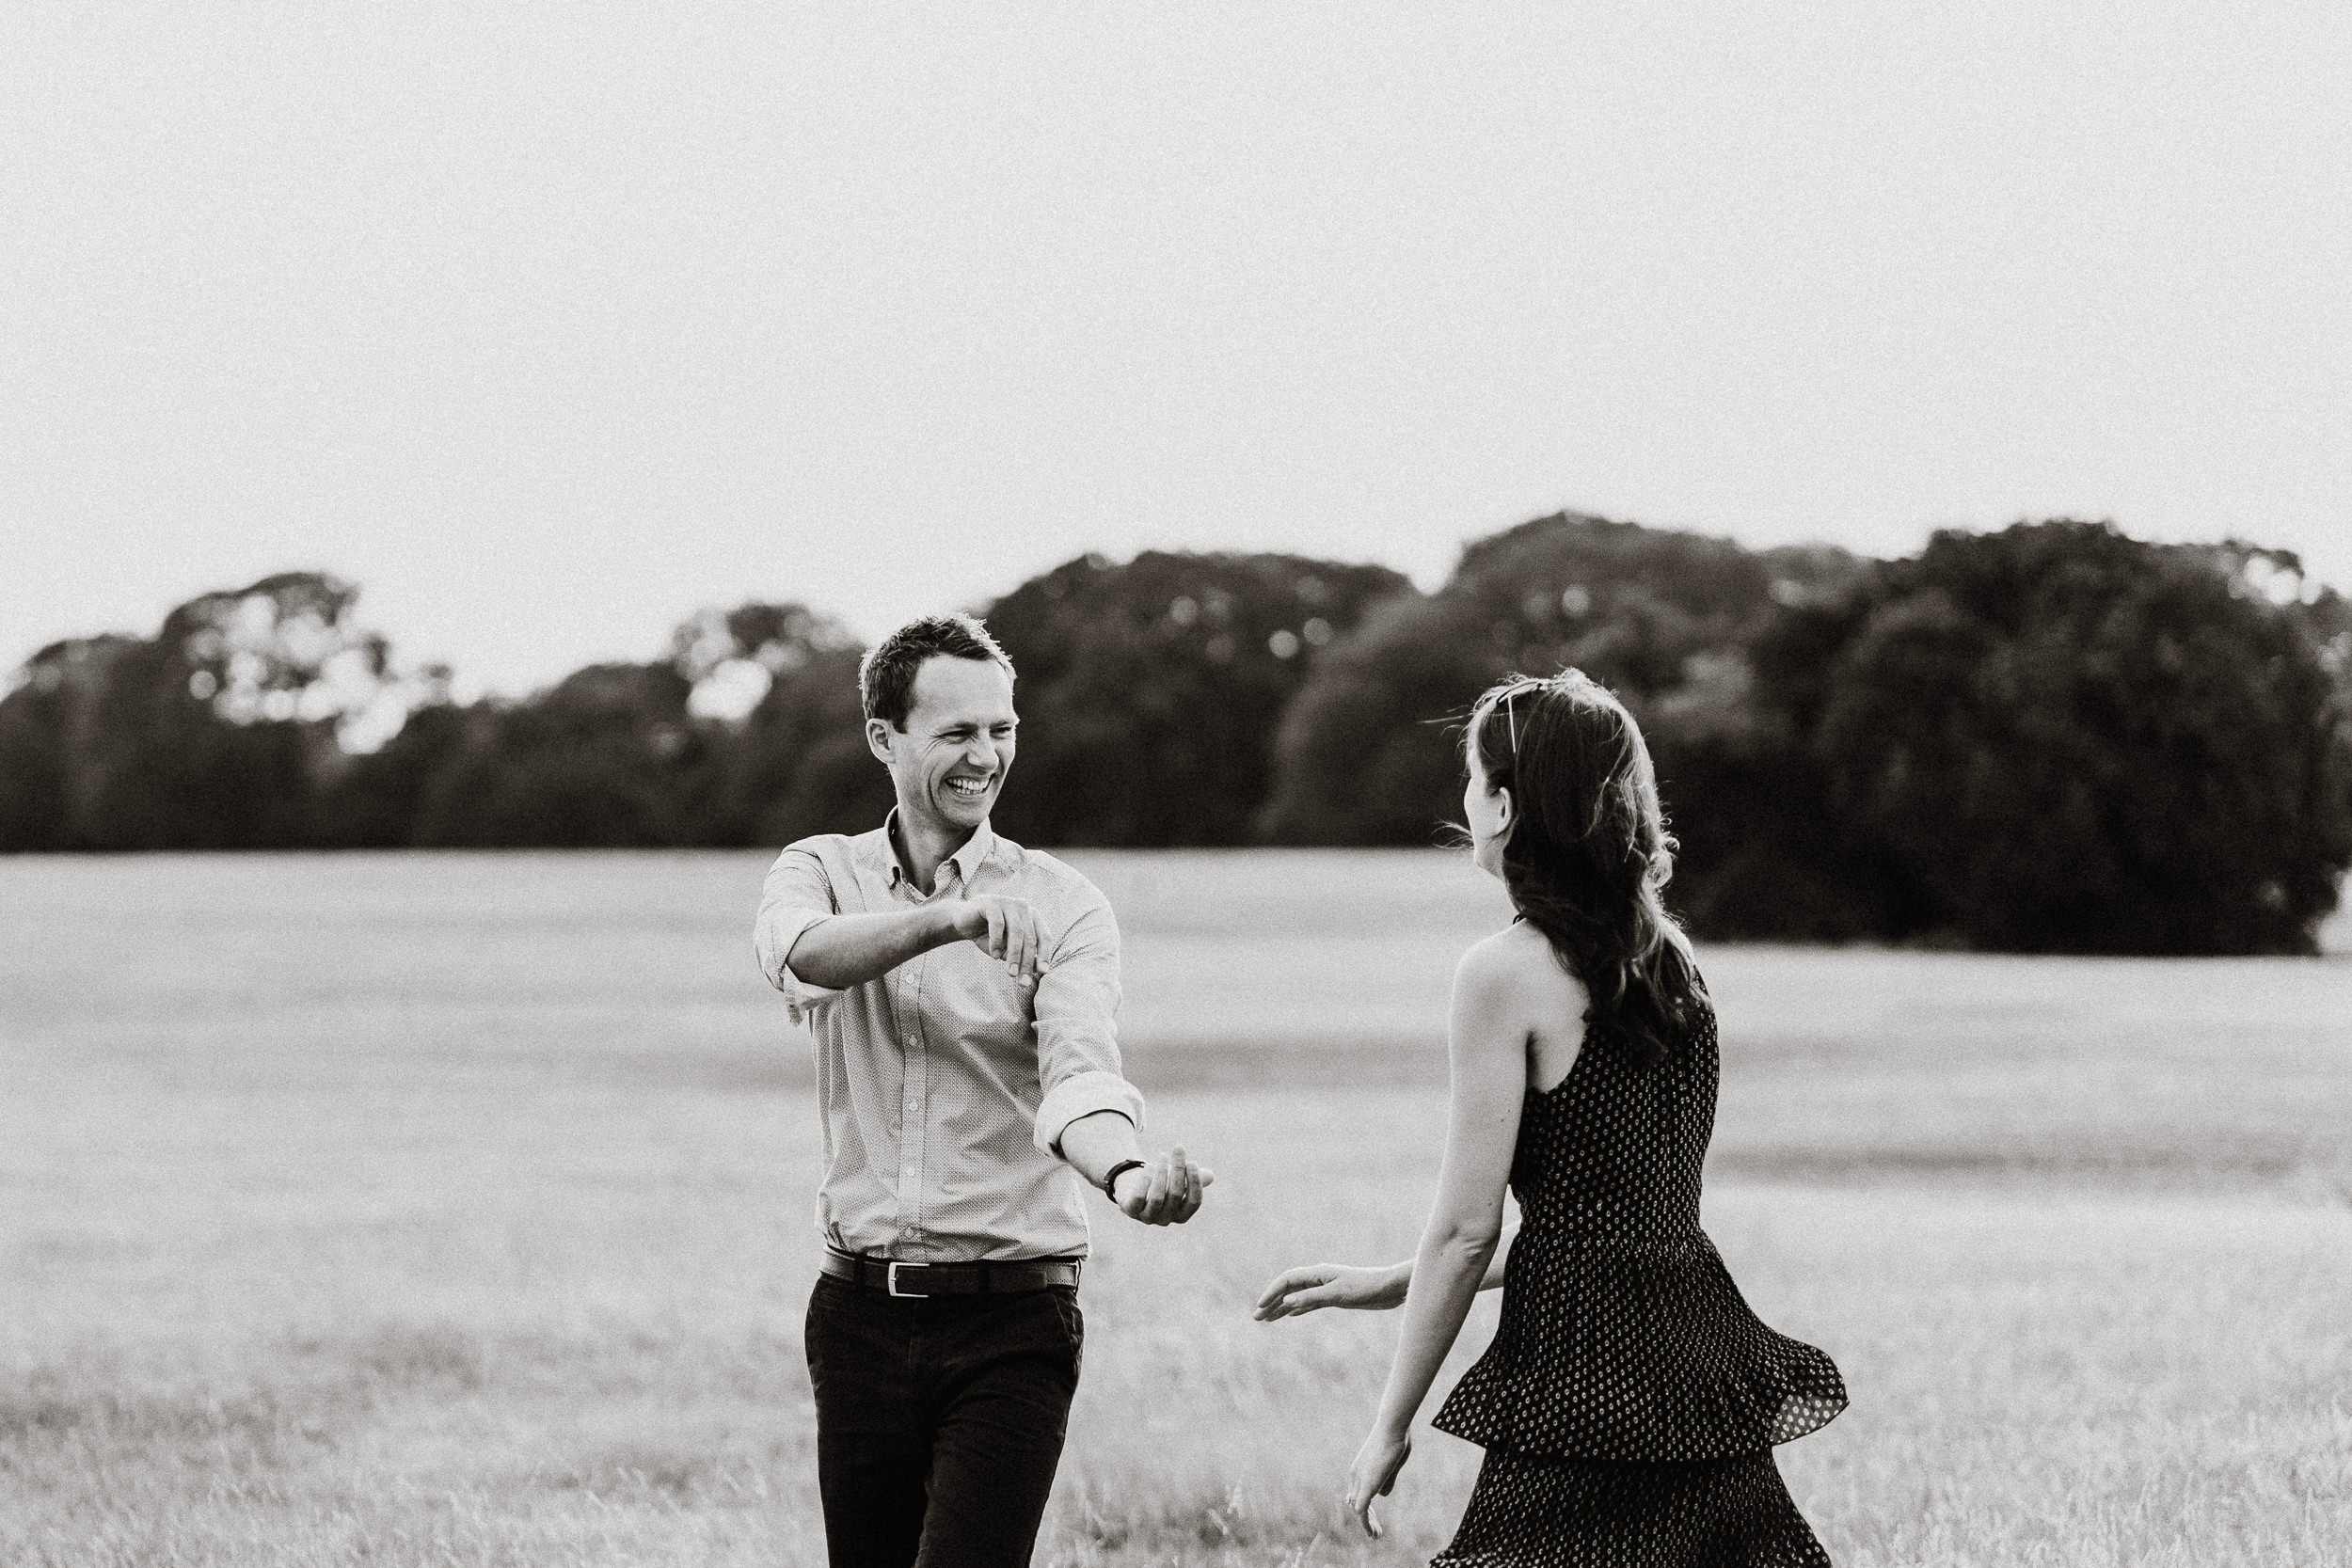 Engagement Shoot on Clifton Downs - The newly engaged couple dancing on the Downs